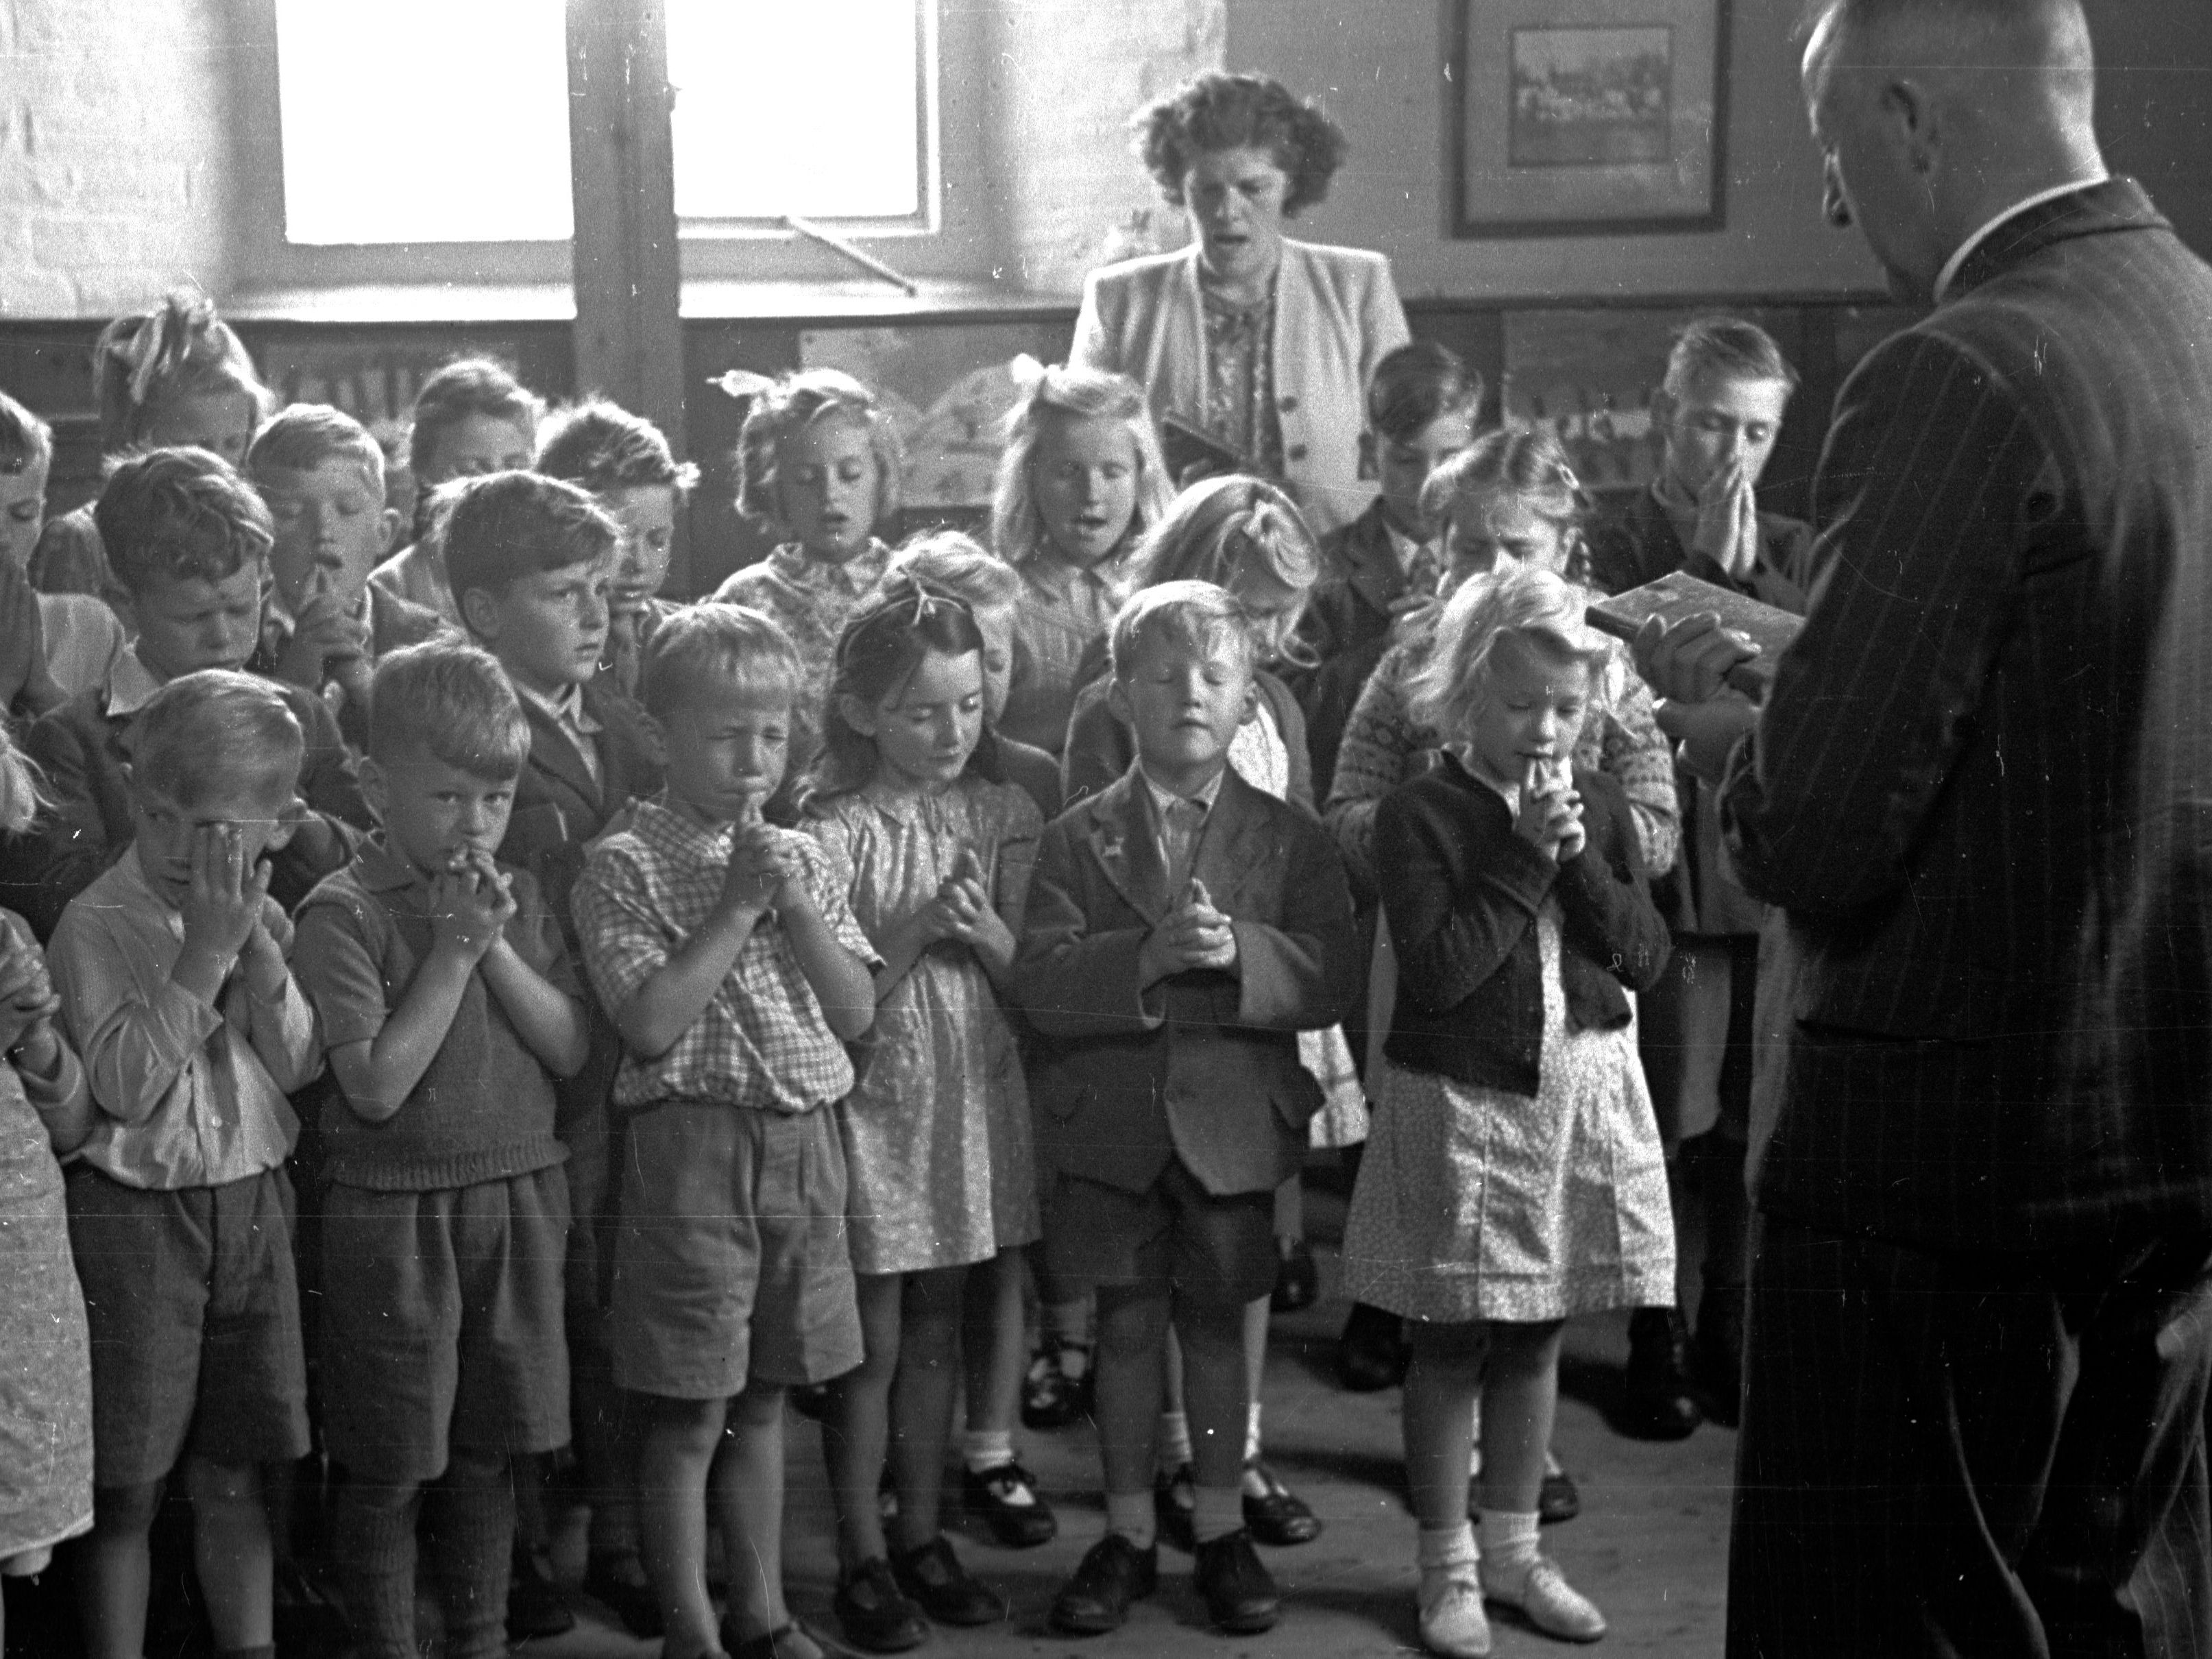 School Prayer: Separation of Church and State